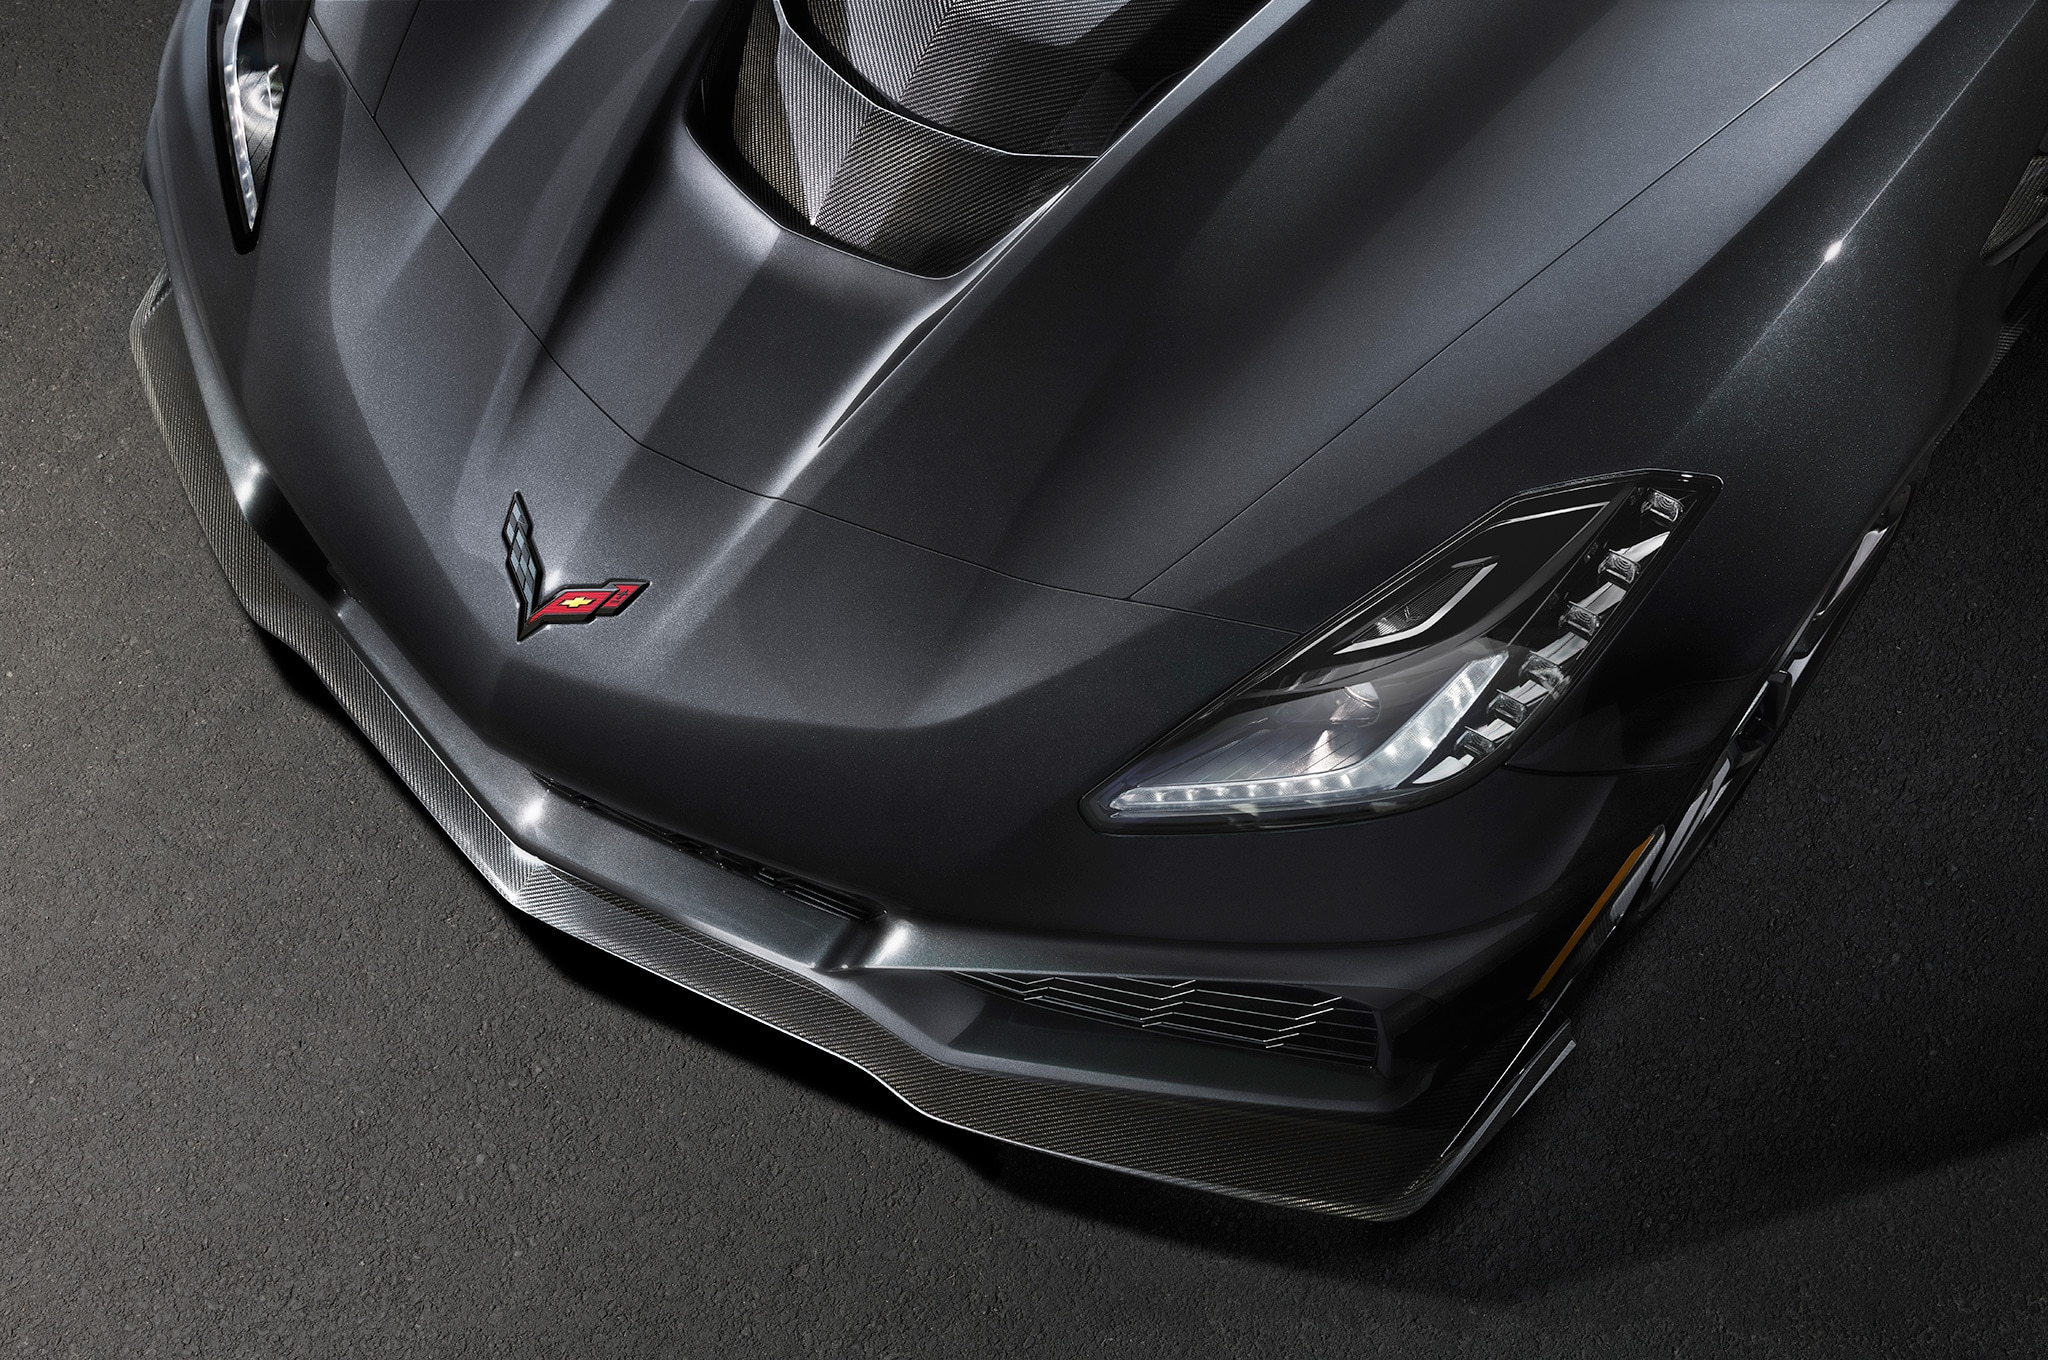 Corvette ZR1 Will Be Fastest and Most Powerful of Its Kind